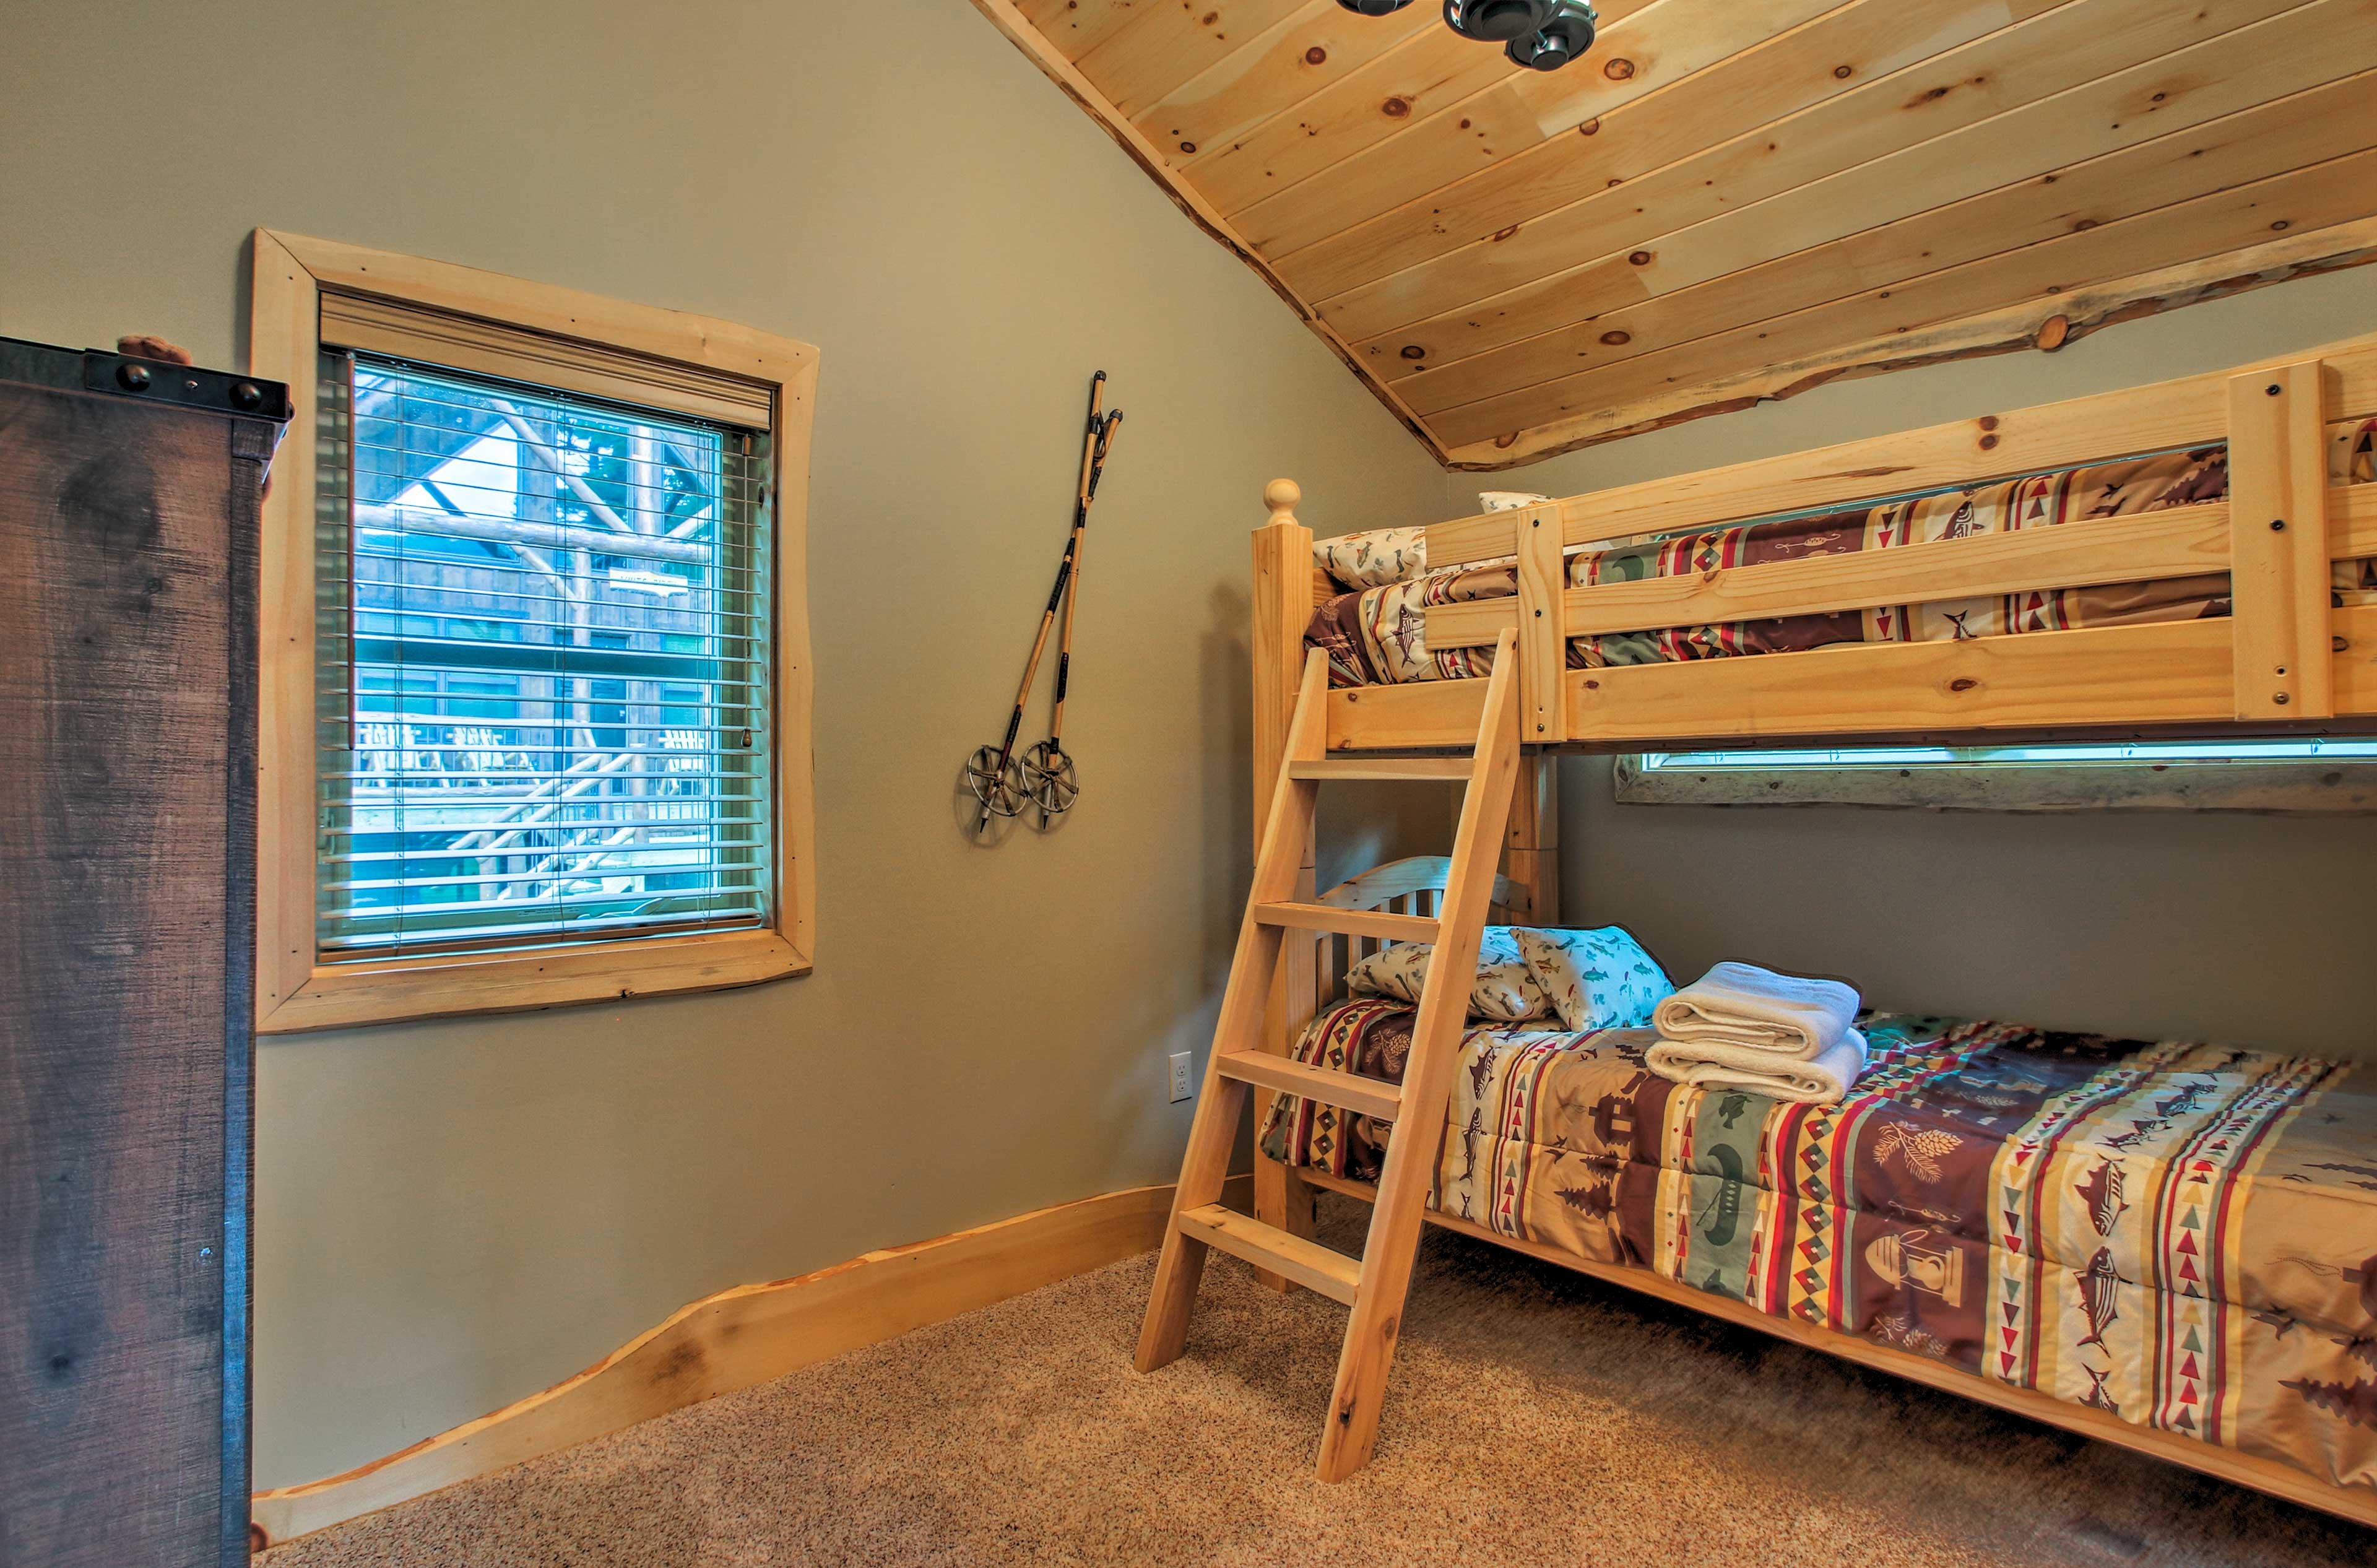 The bunk room, with a twin-over-twin bunk bed, is perfect for kids!